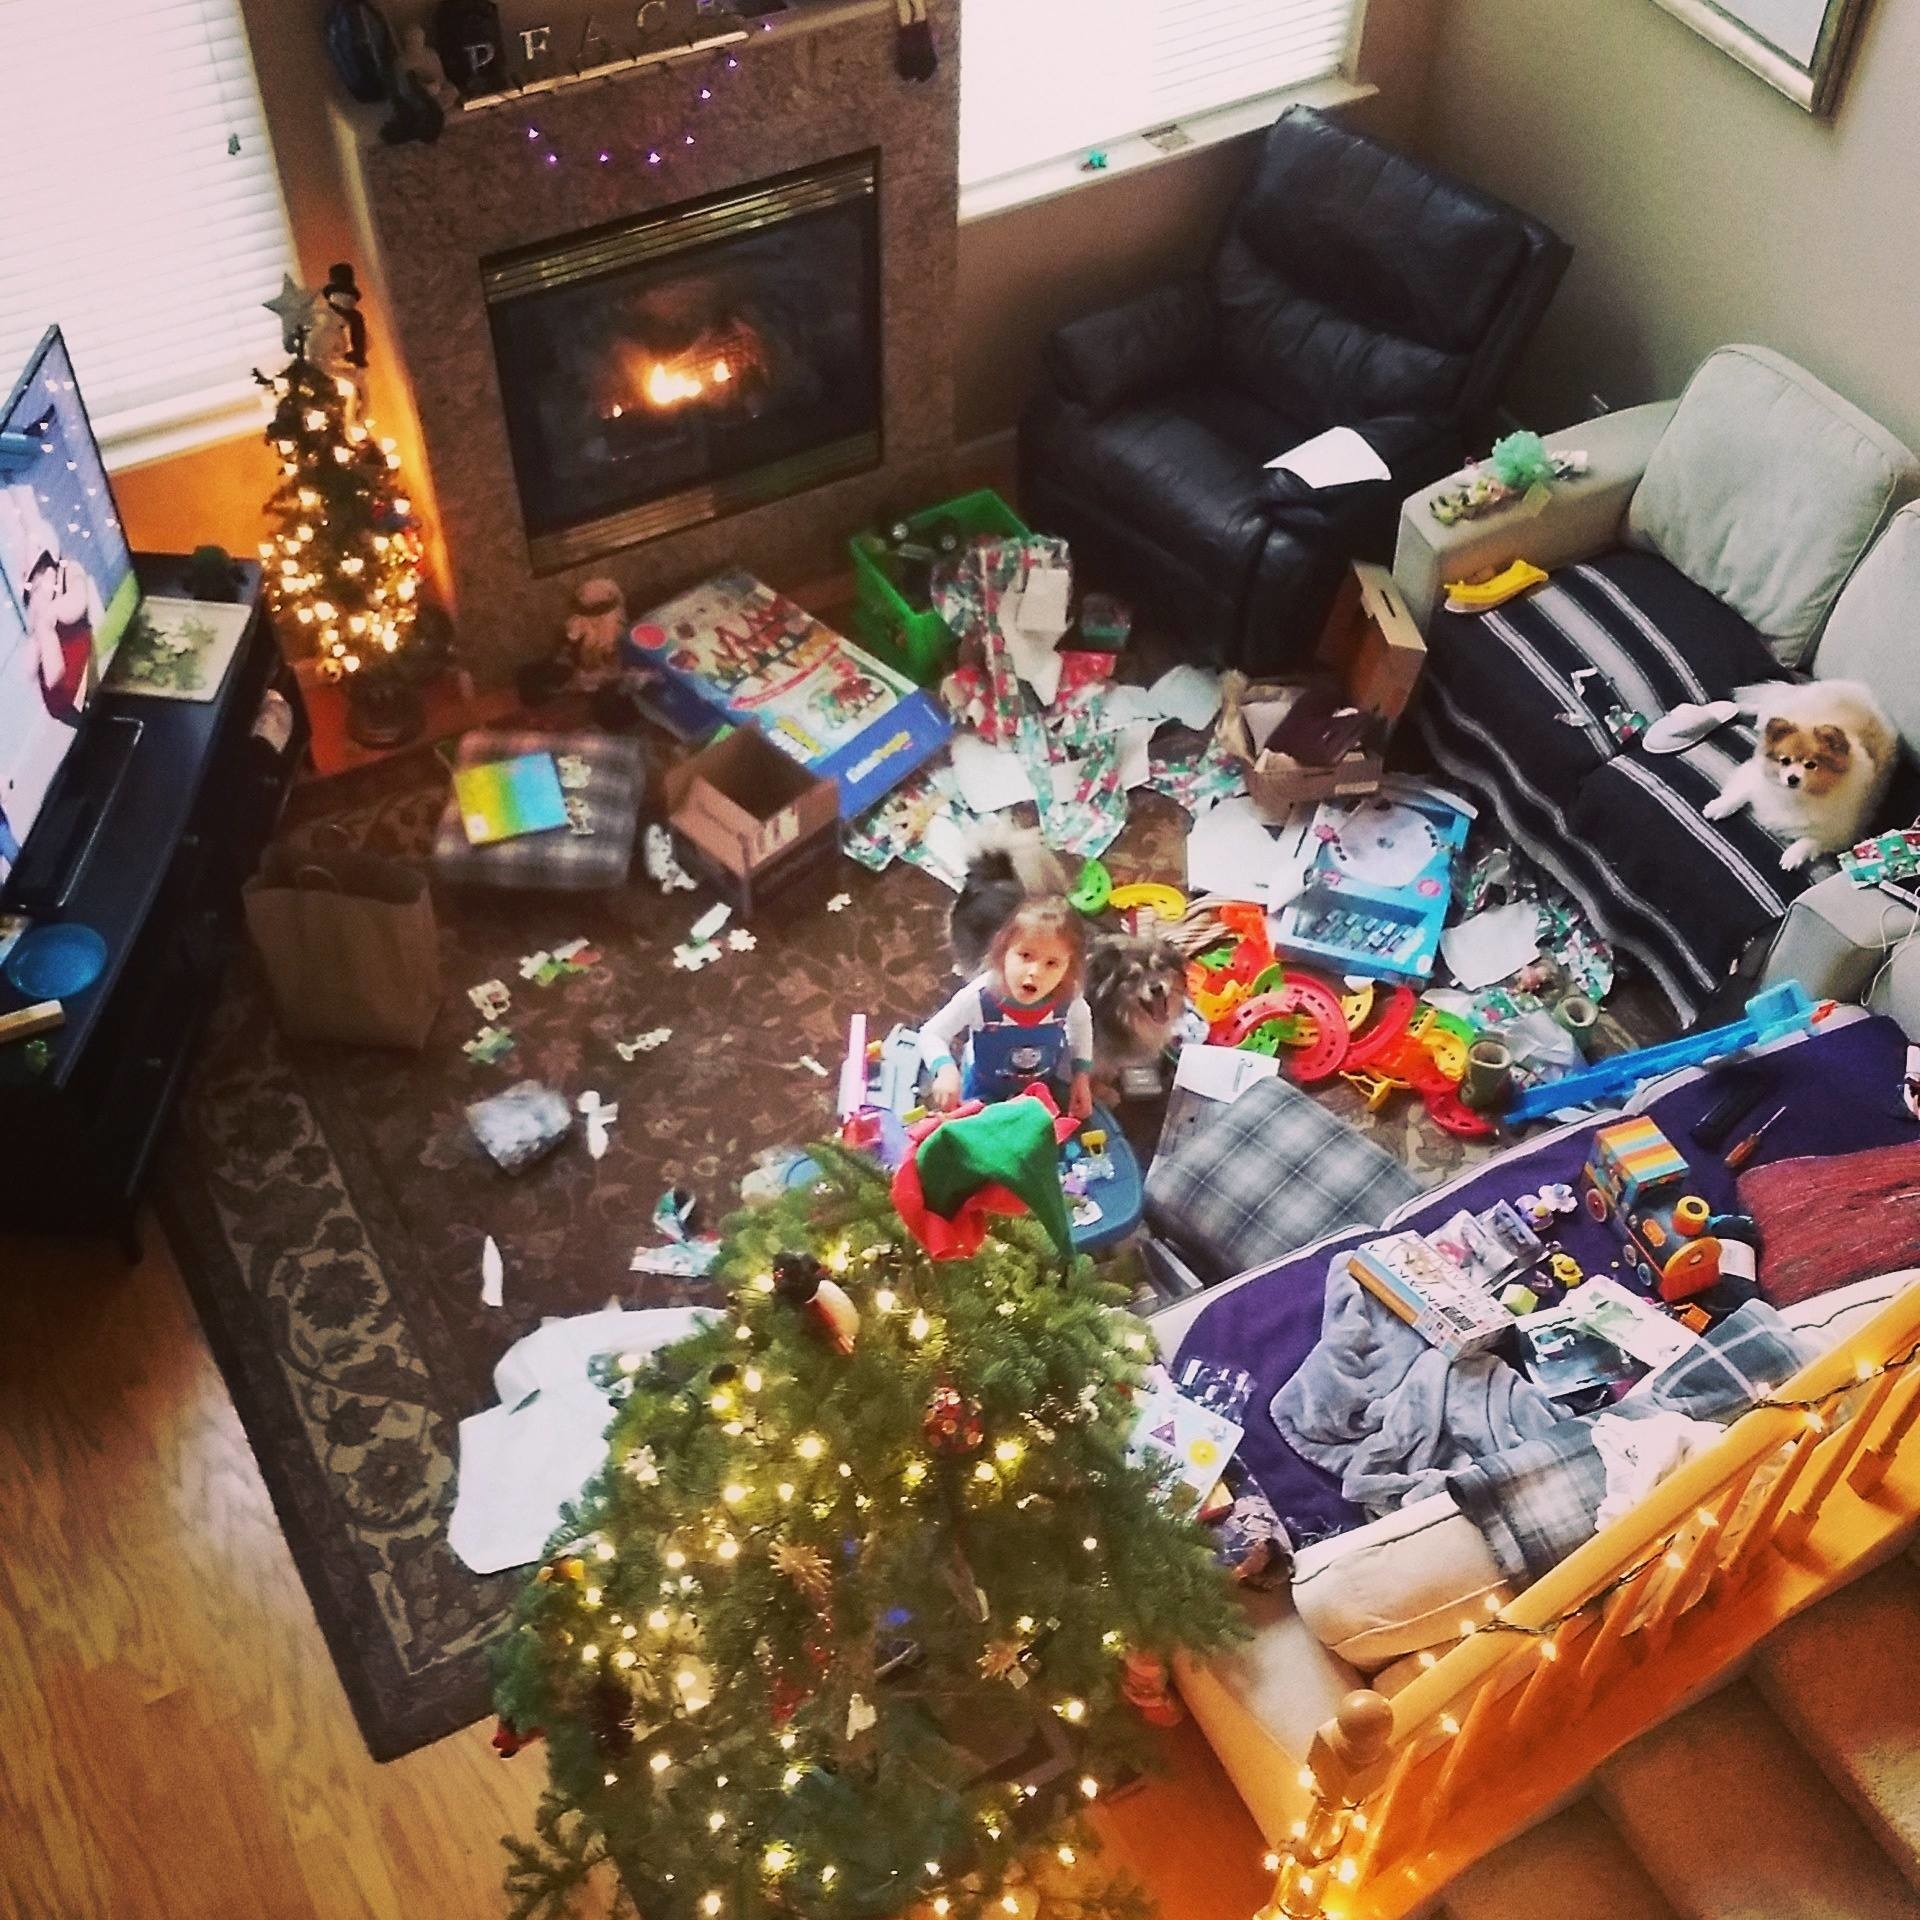 This may be my living room on Christmas morning but it would be a lie to say it doesn't look like this at other times, too.